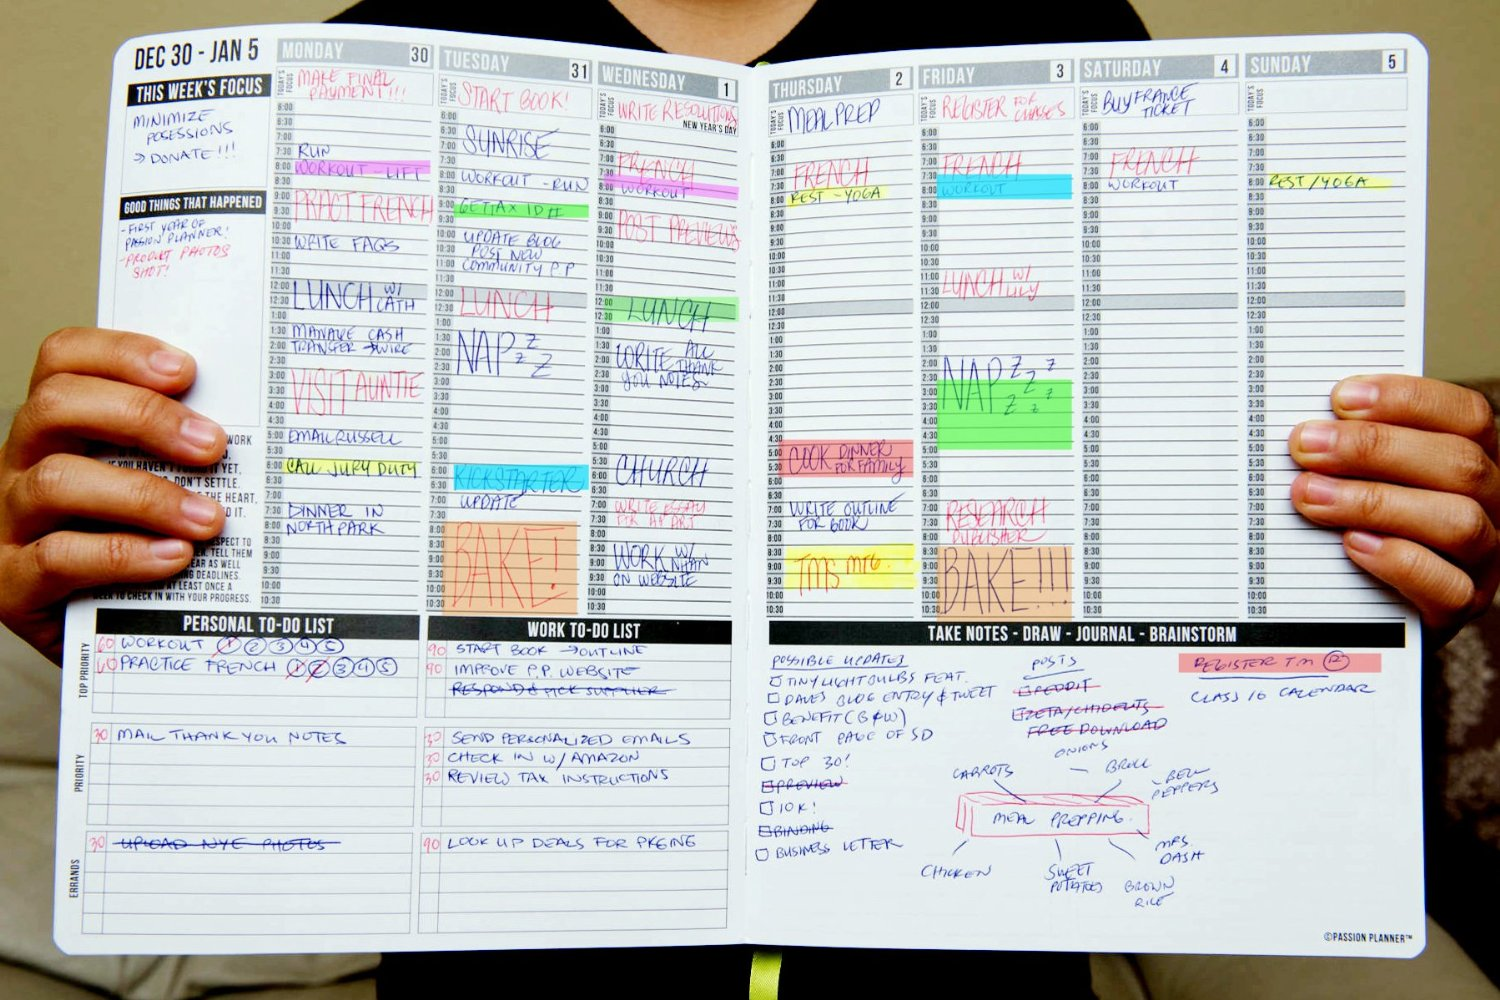 Organized Calendar Planner : Passion planner wife on the run